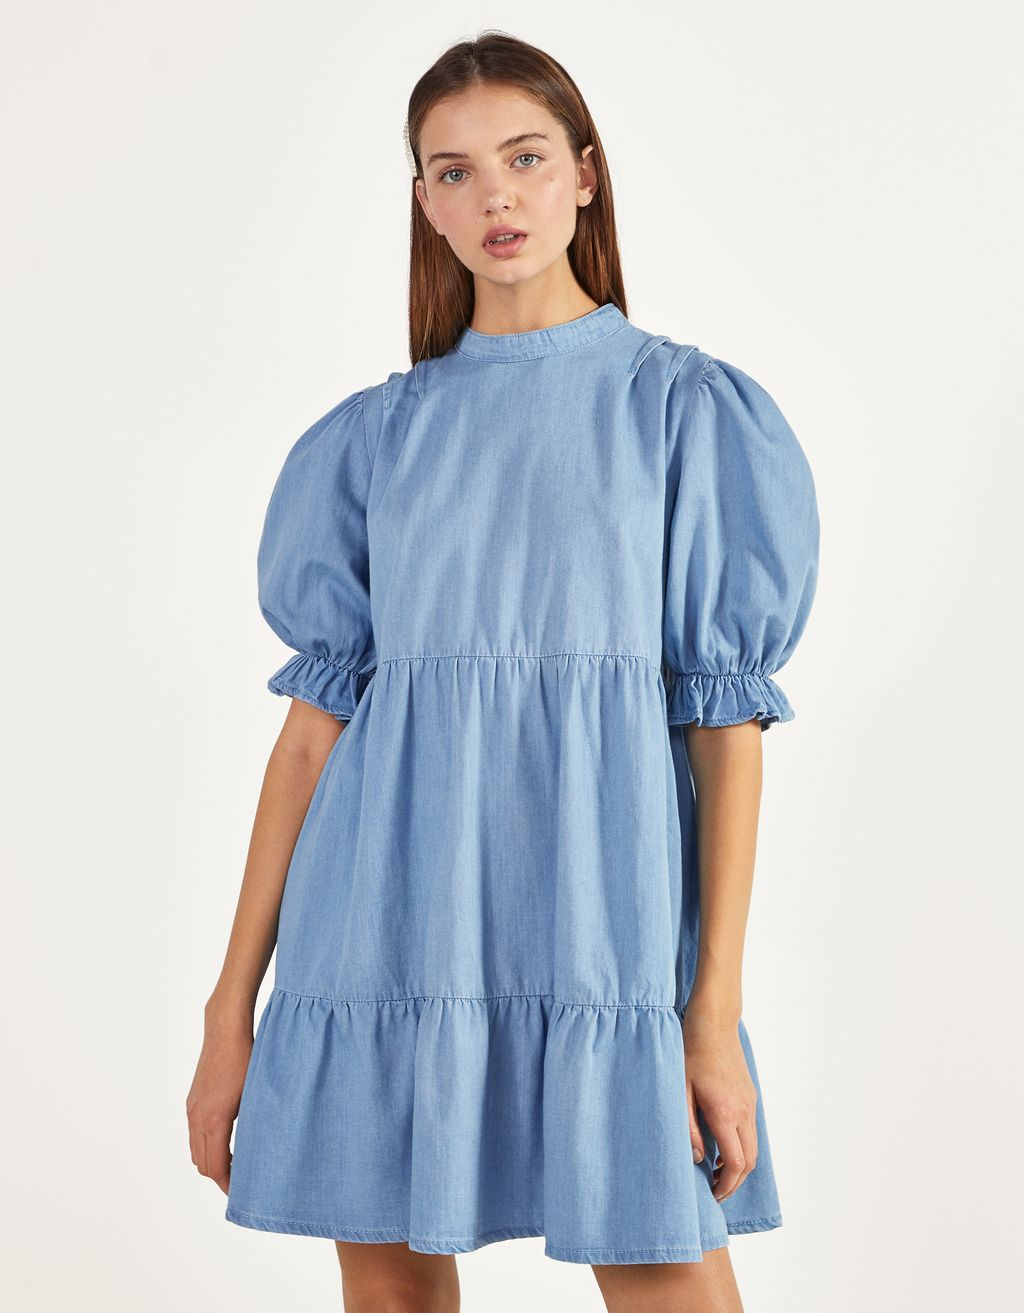 Denim baby-doll dress